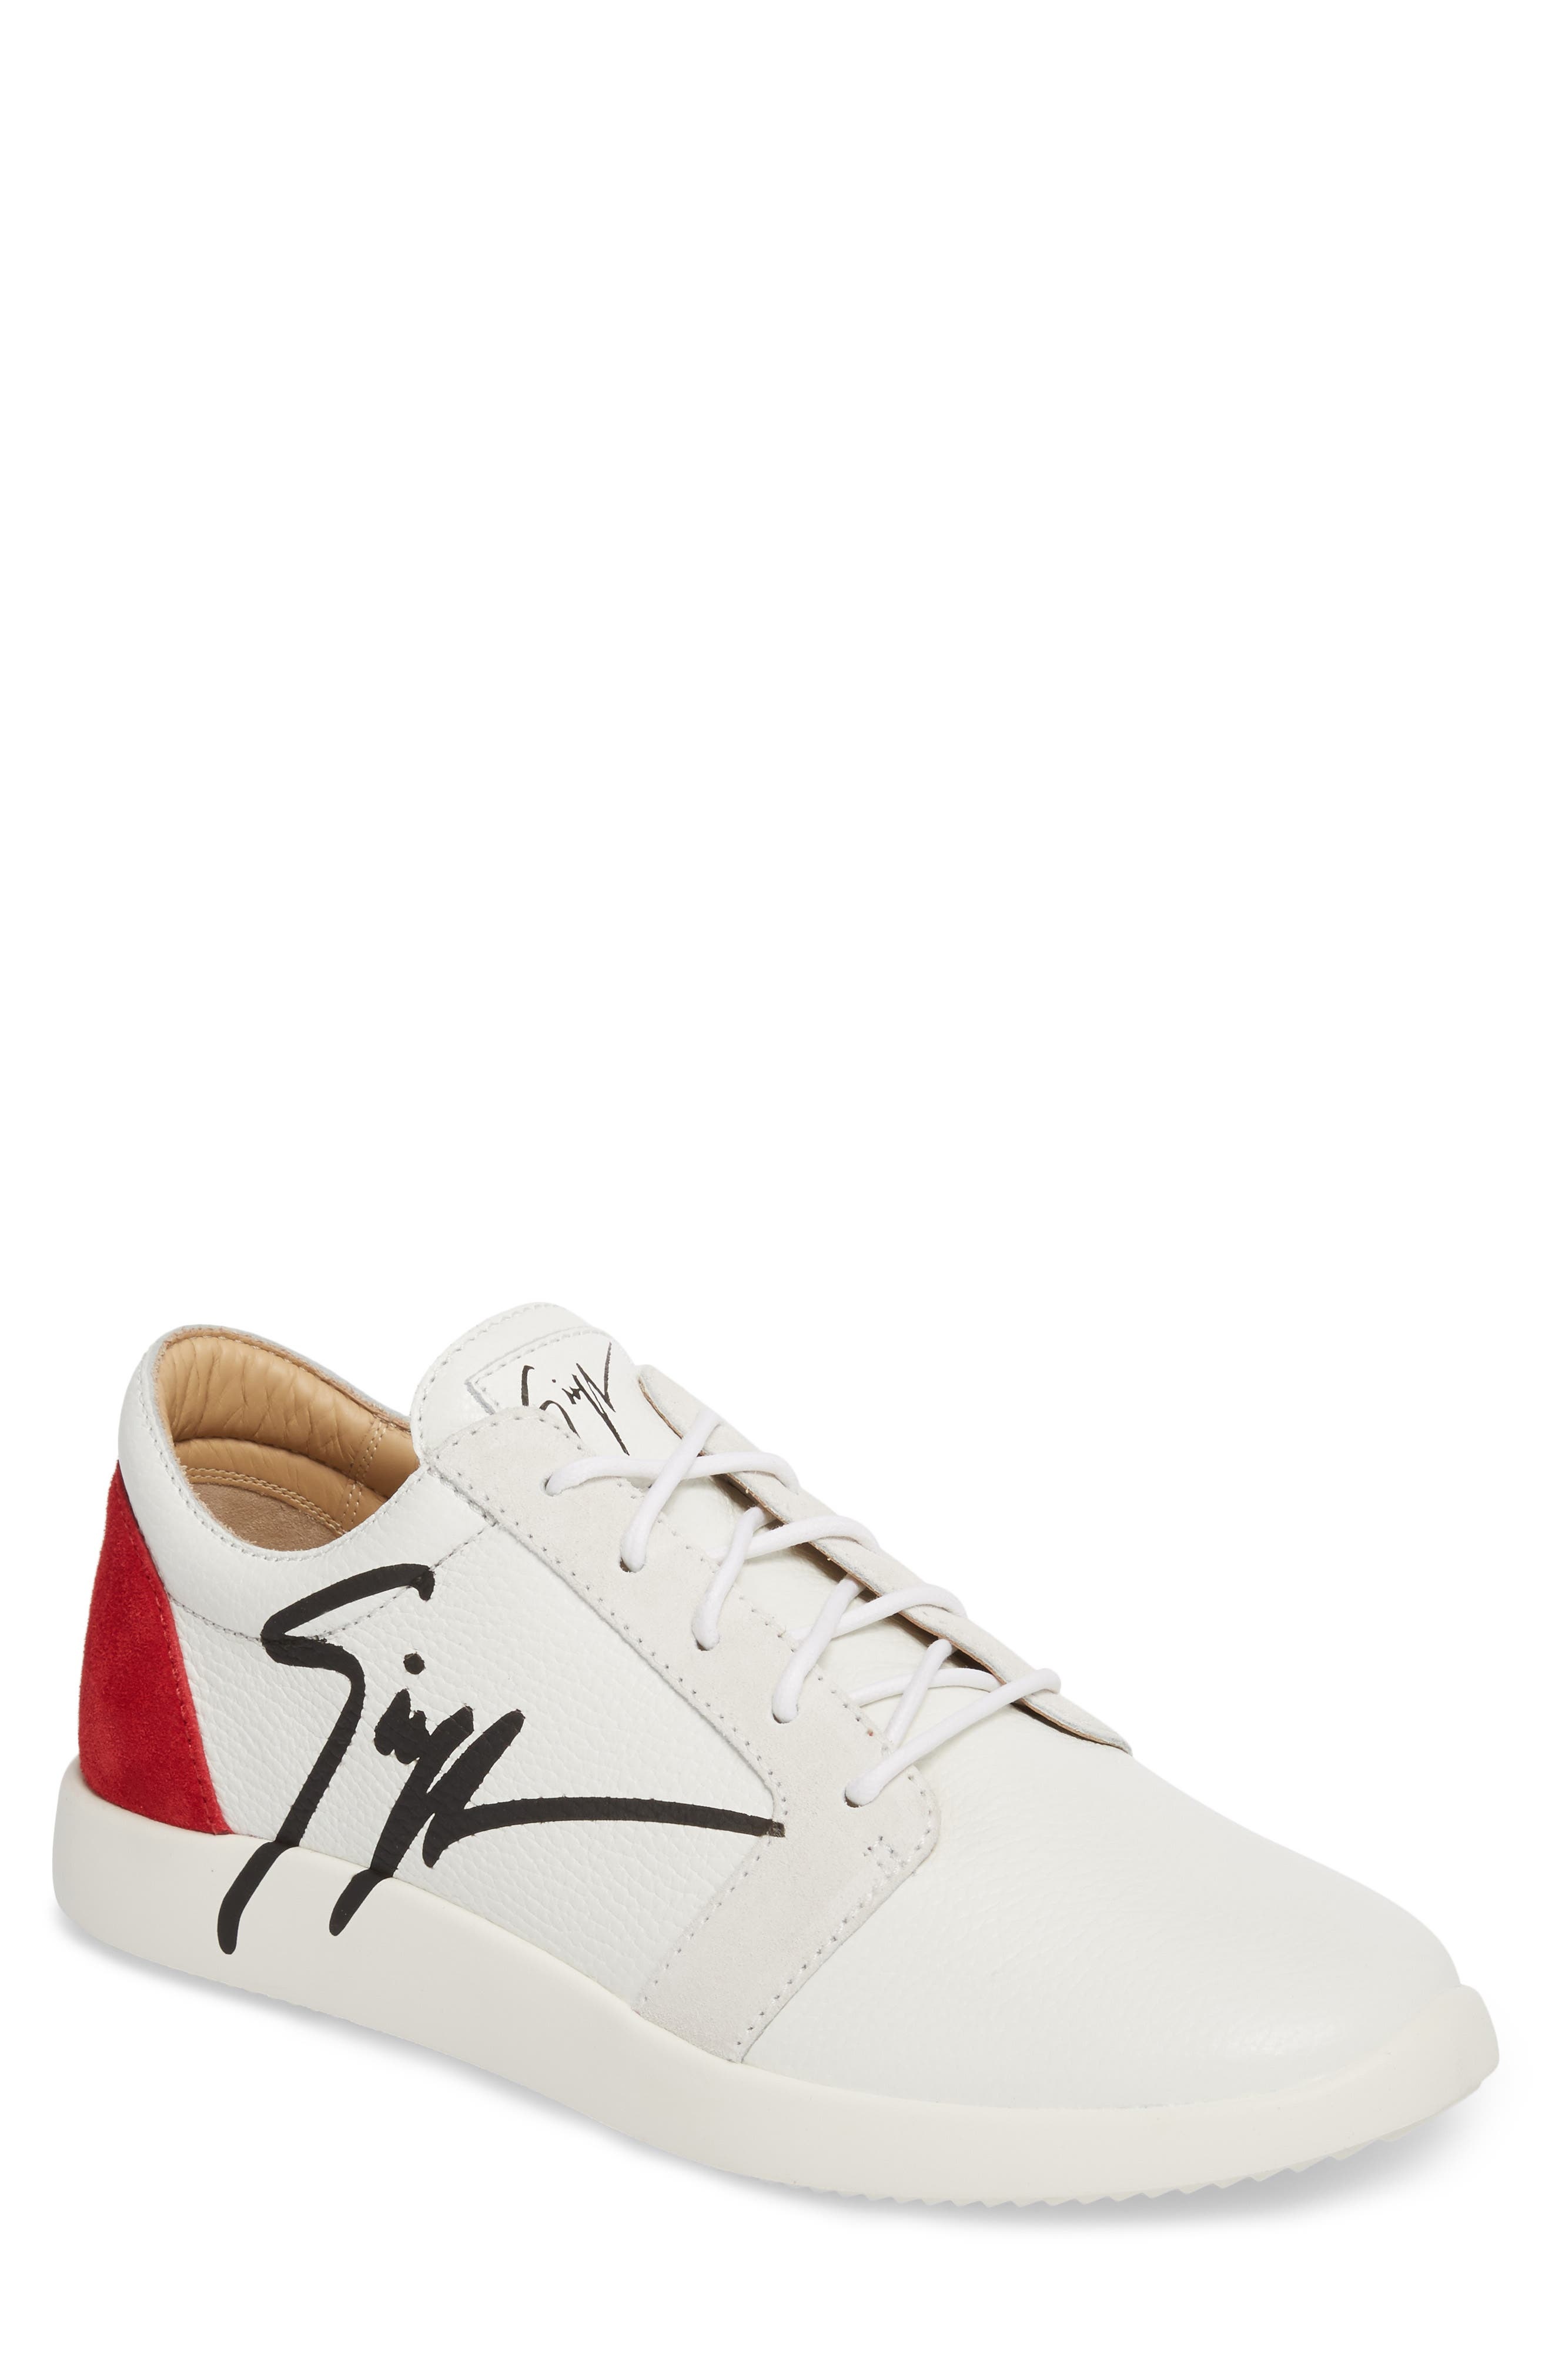 Signature Sneaker,                             Main thumbnail 1, color,                             White W/ Red Counter